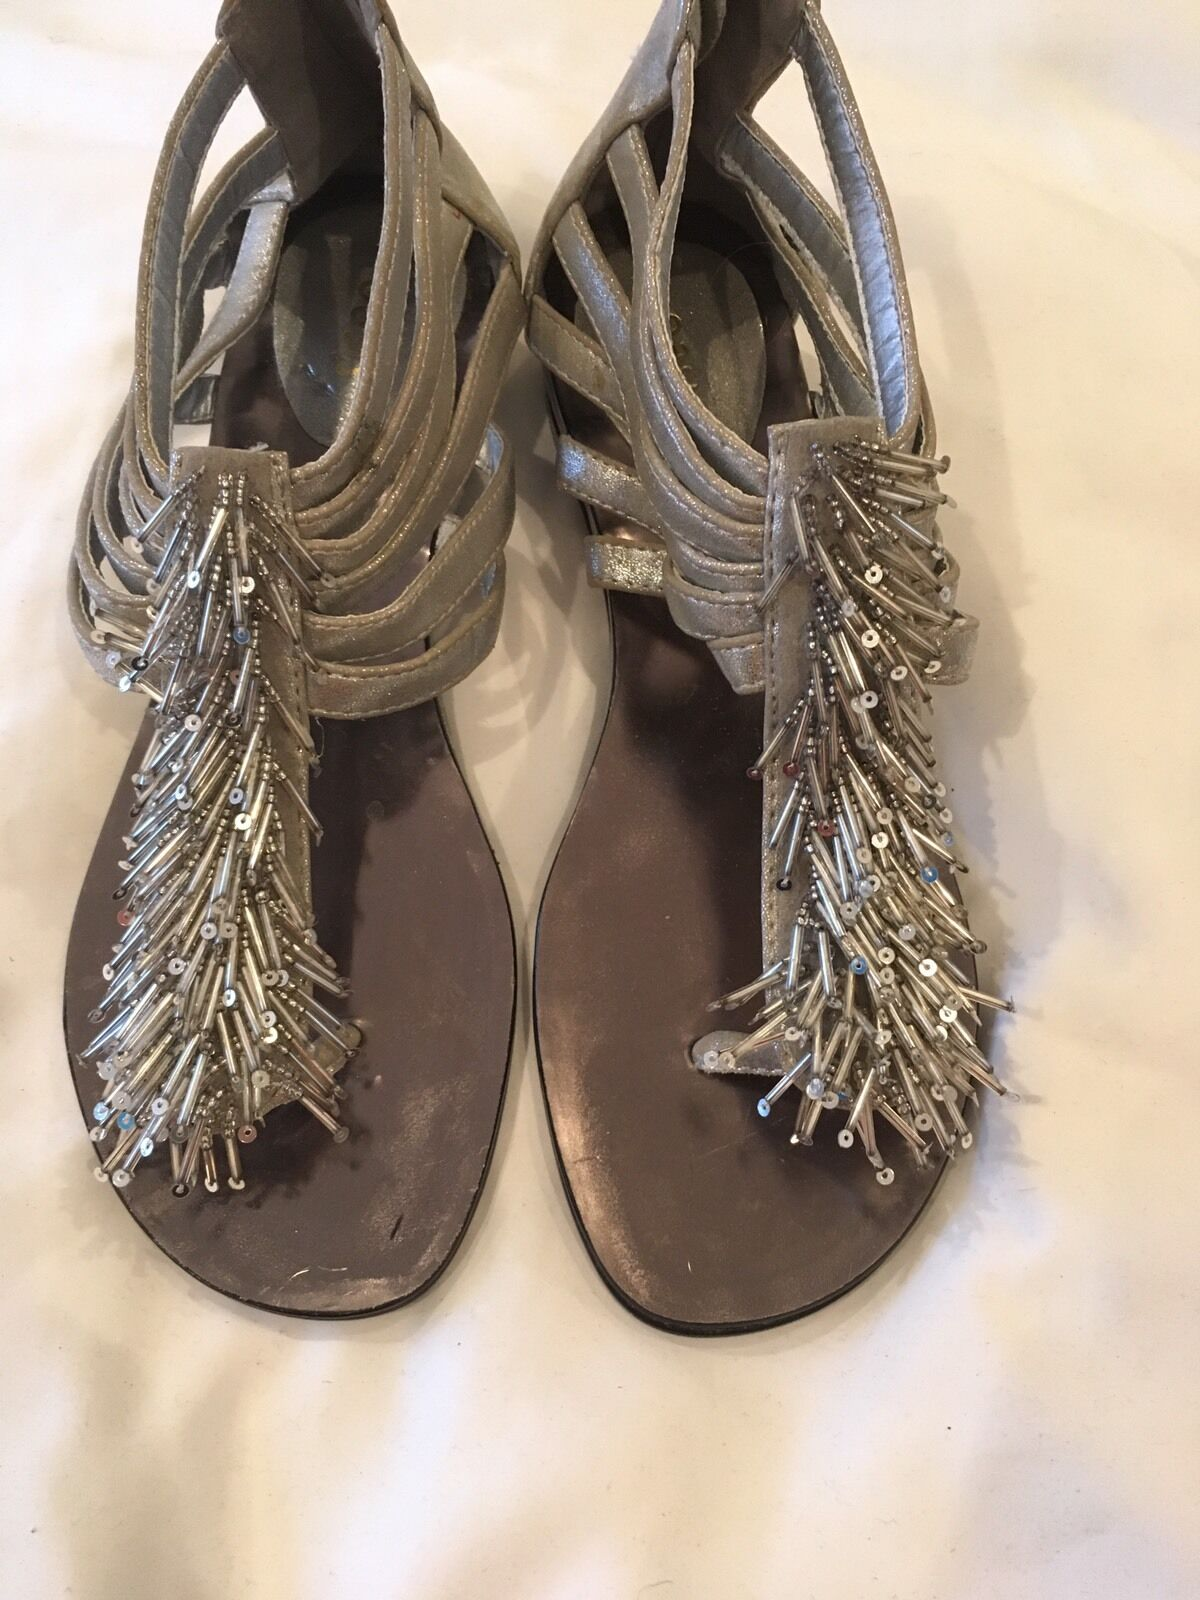 Oasis Beaded Sandals Grey Size 37 New  Grey Sandals Colour new 94dbe1